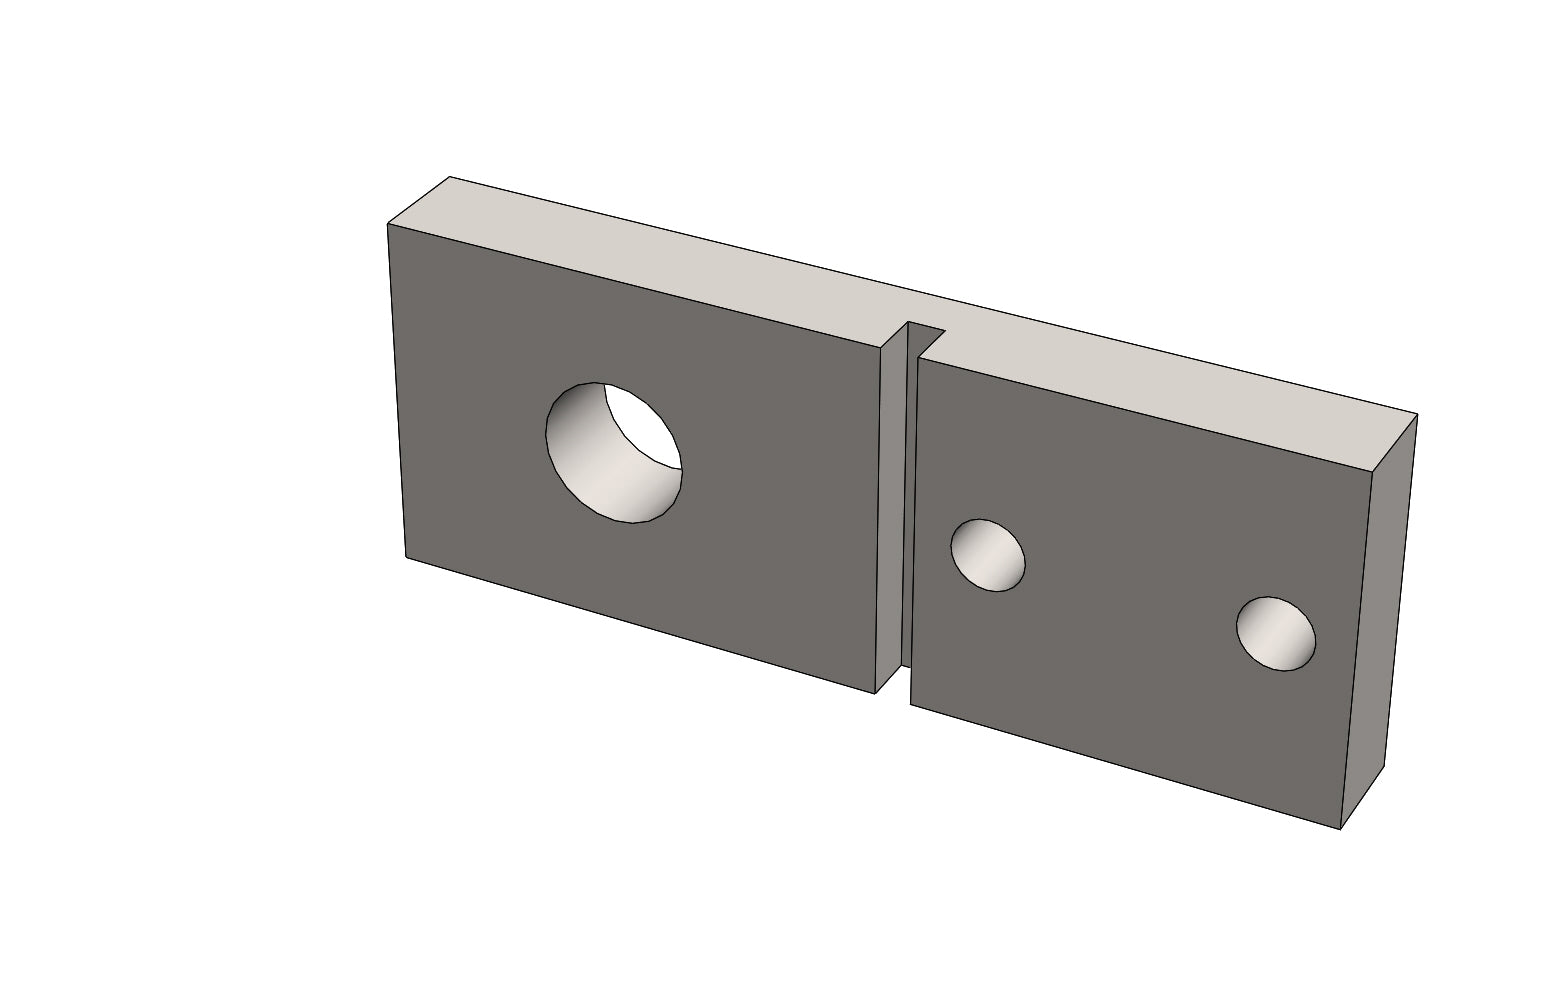 SCM12939 - CLAMP BRACKET LOWER for a Slat Filler